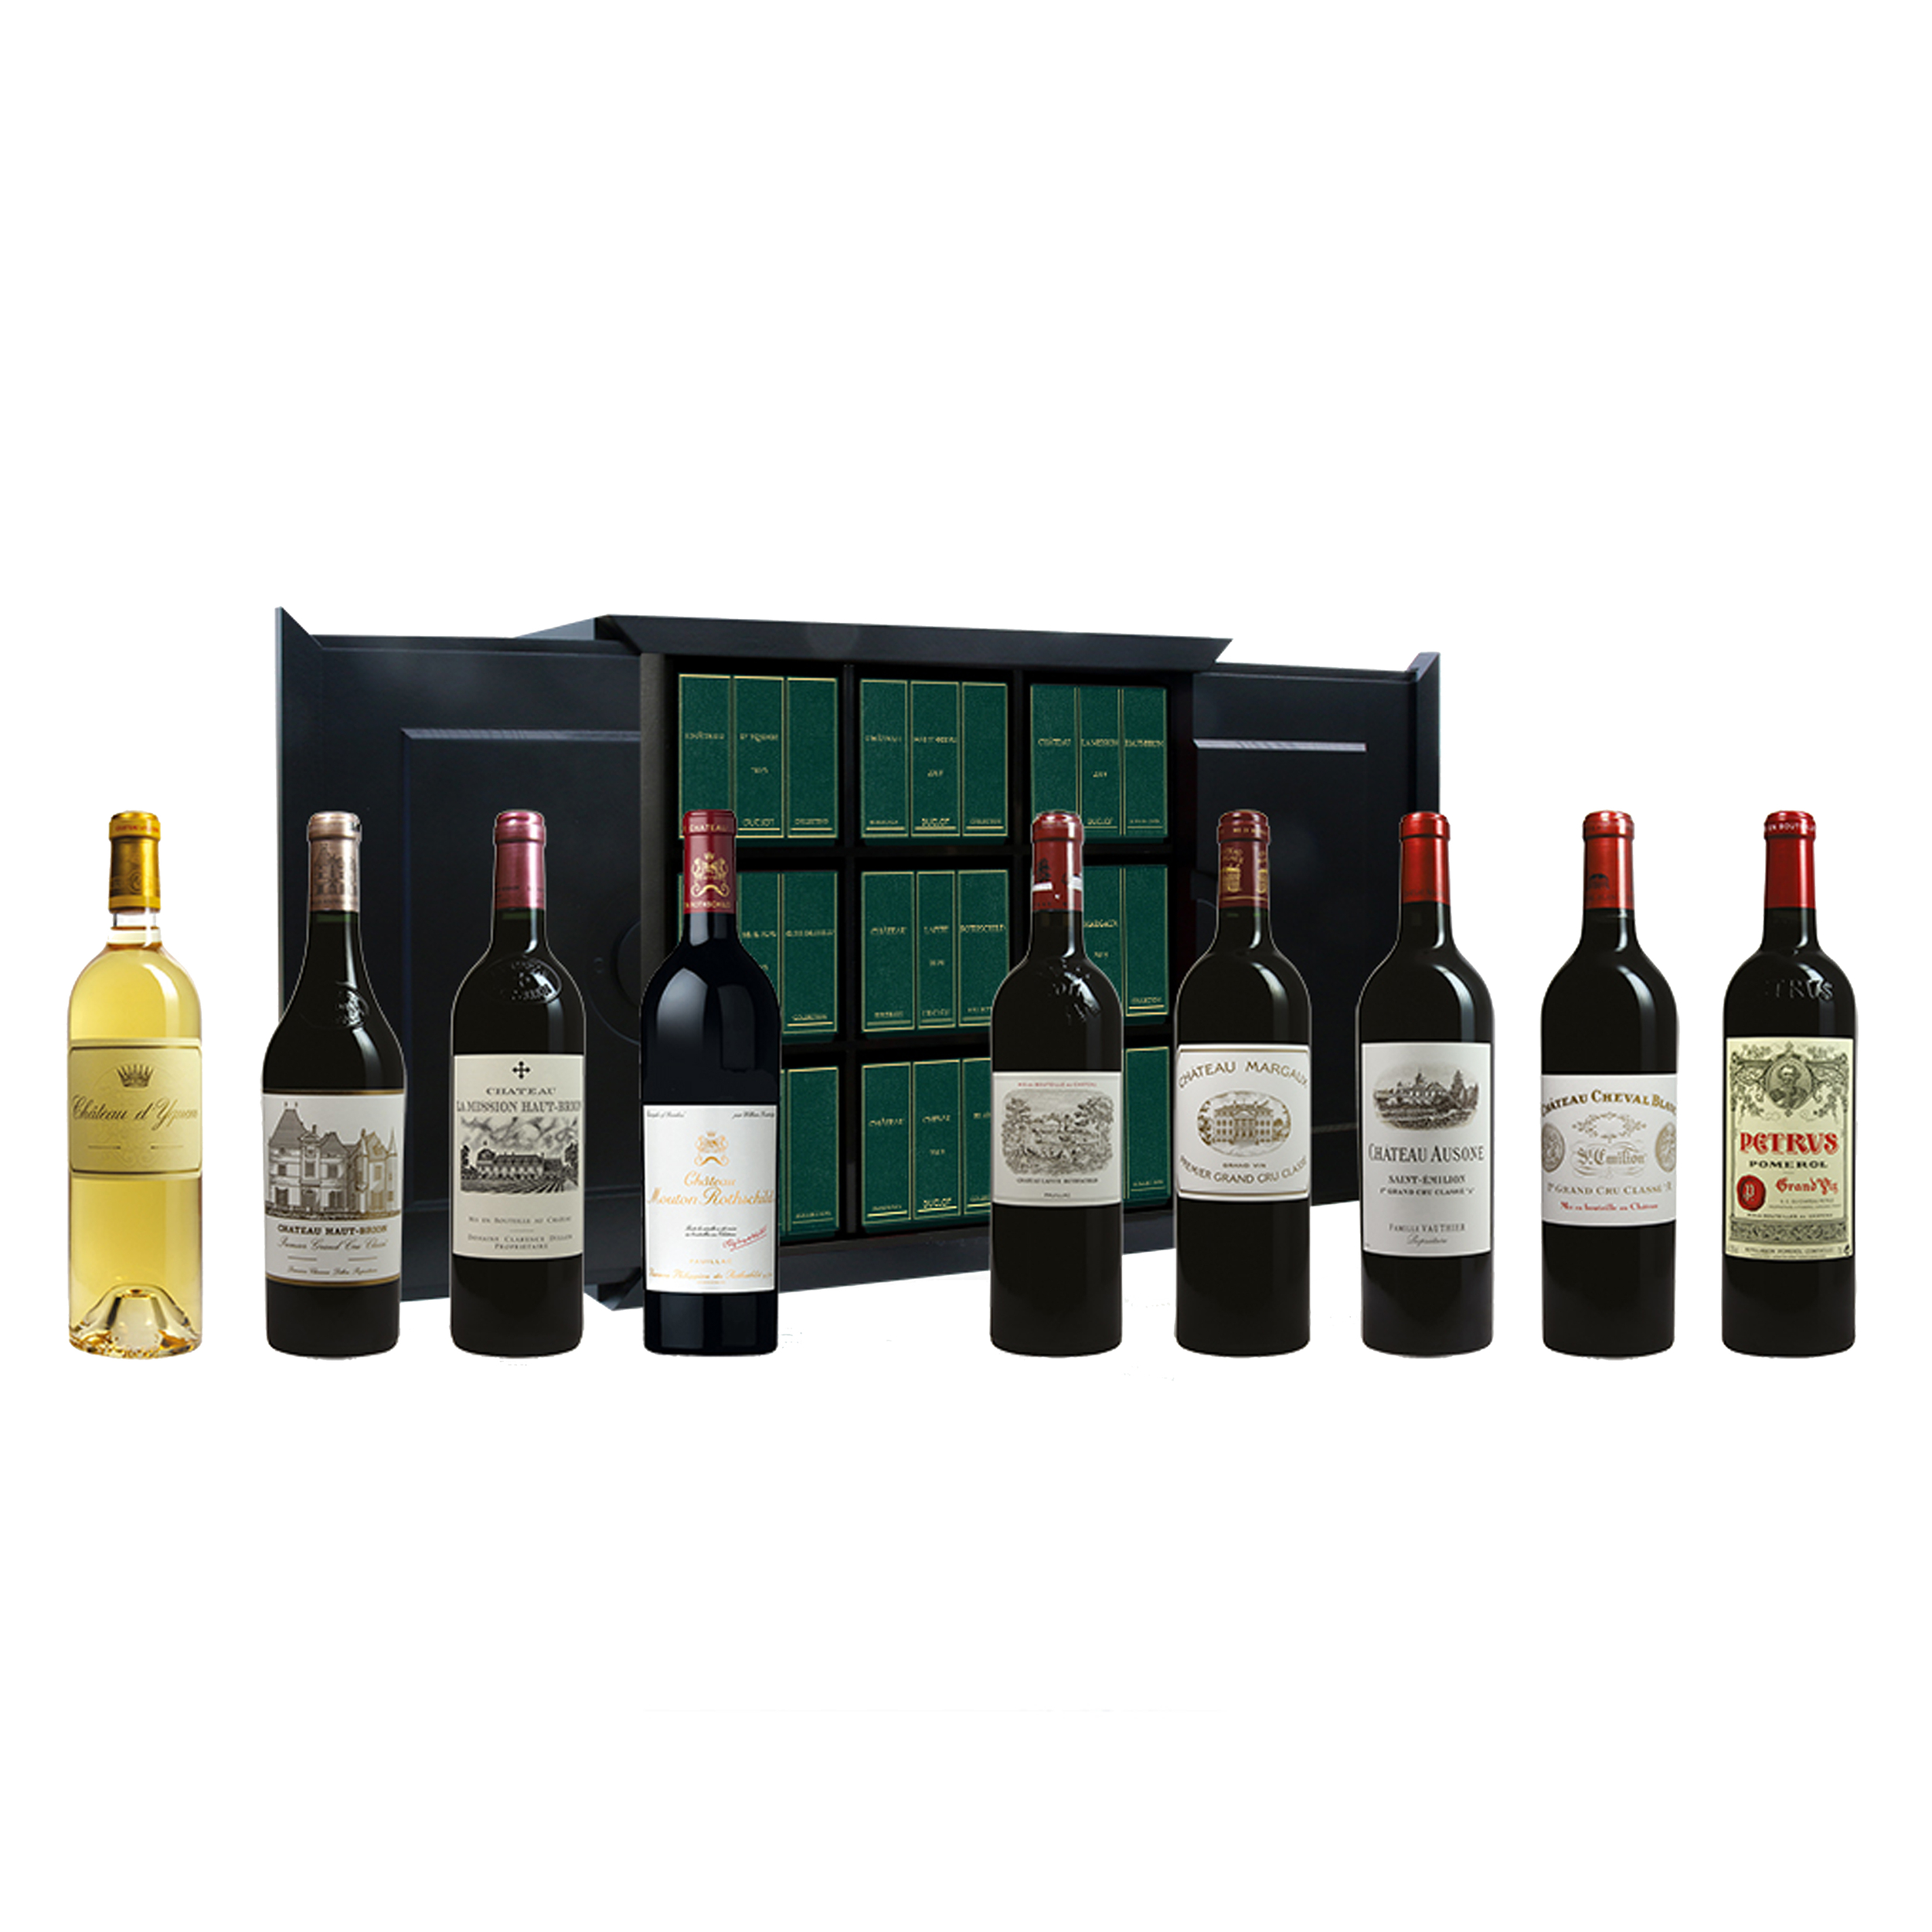 Bordeaux - Coffret collection DUCLOT 2019 - DISPONIBLE PRINTEMPS 2021